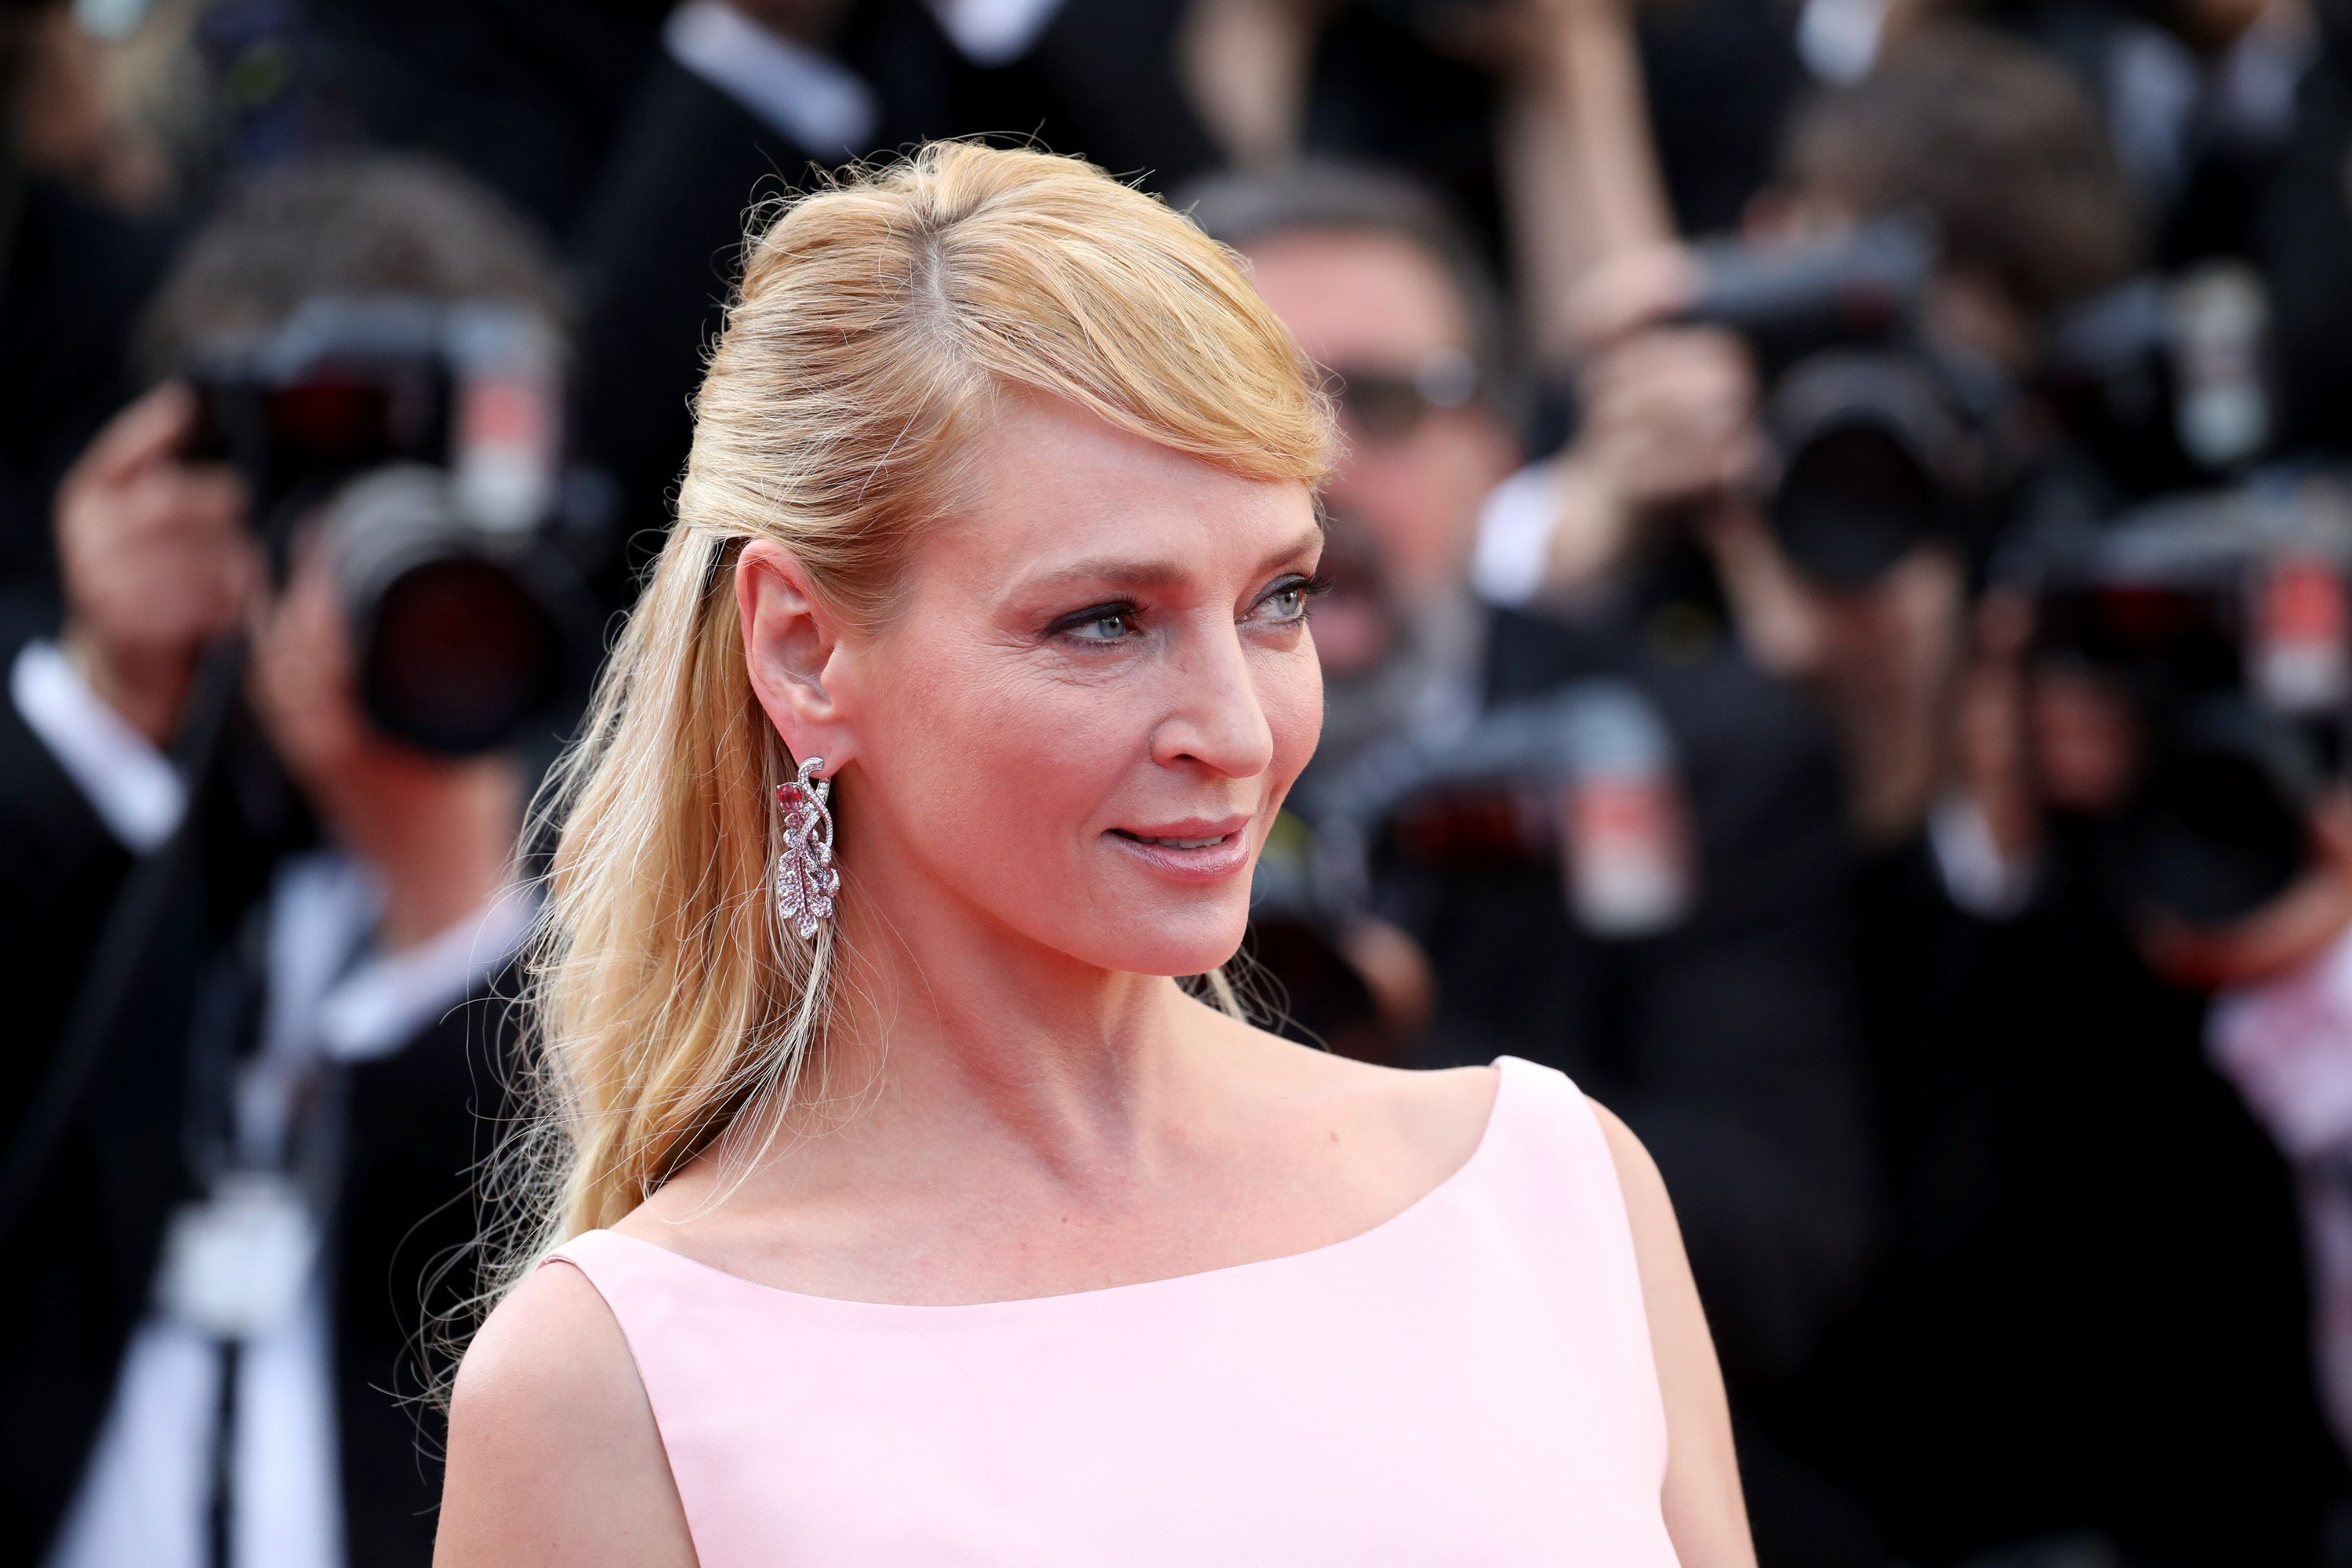 Uma Thurman attends the 70th Anniversary of the 70th annual Cannes Film Festival. | Source: Getty Images